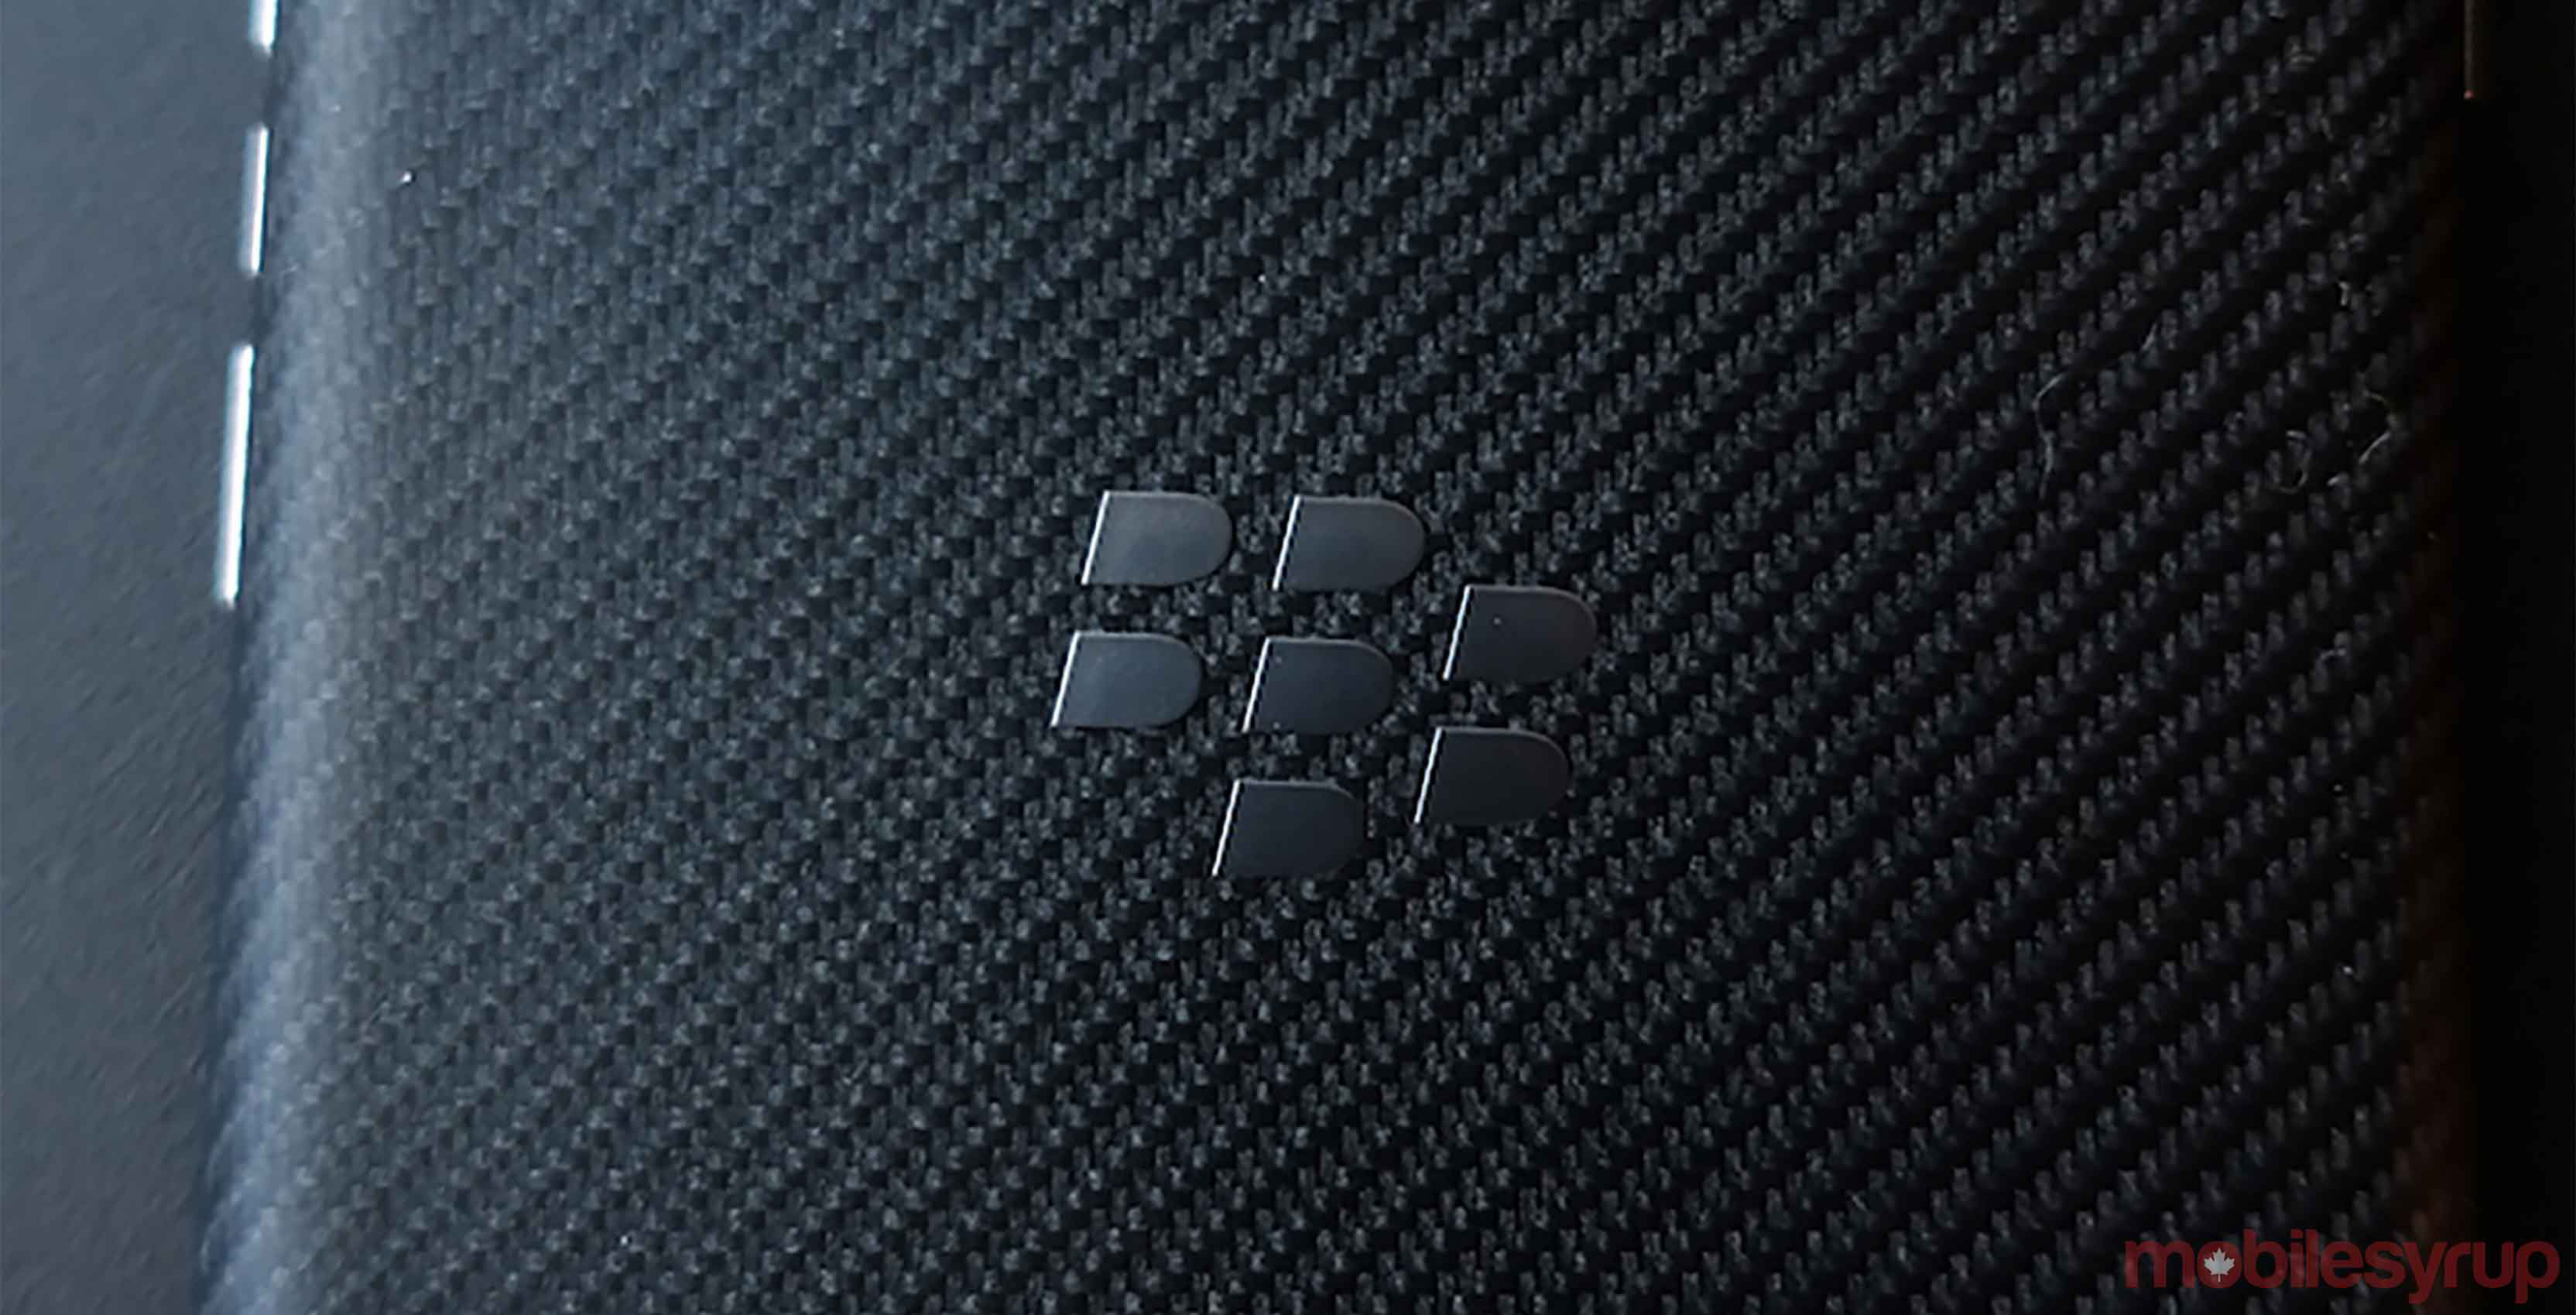 A water-resistant BlackBerry phone sans keyboard is in the making